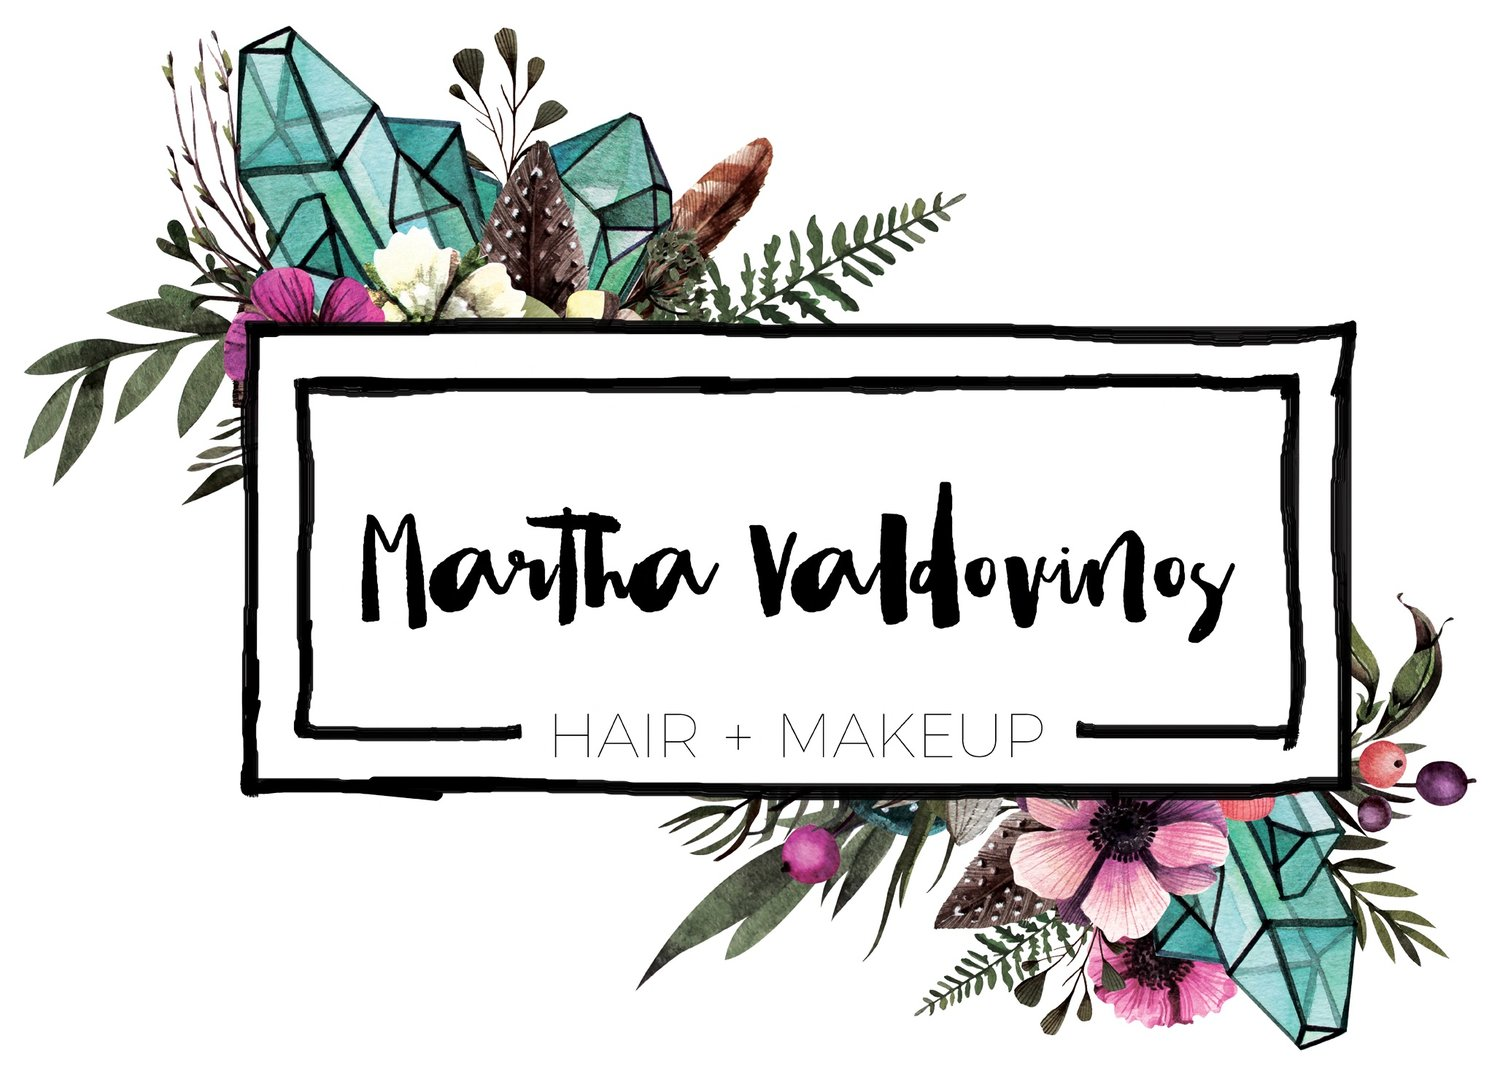 MARTHA VALDOVINOS Hair + Makeup